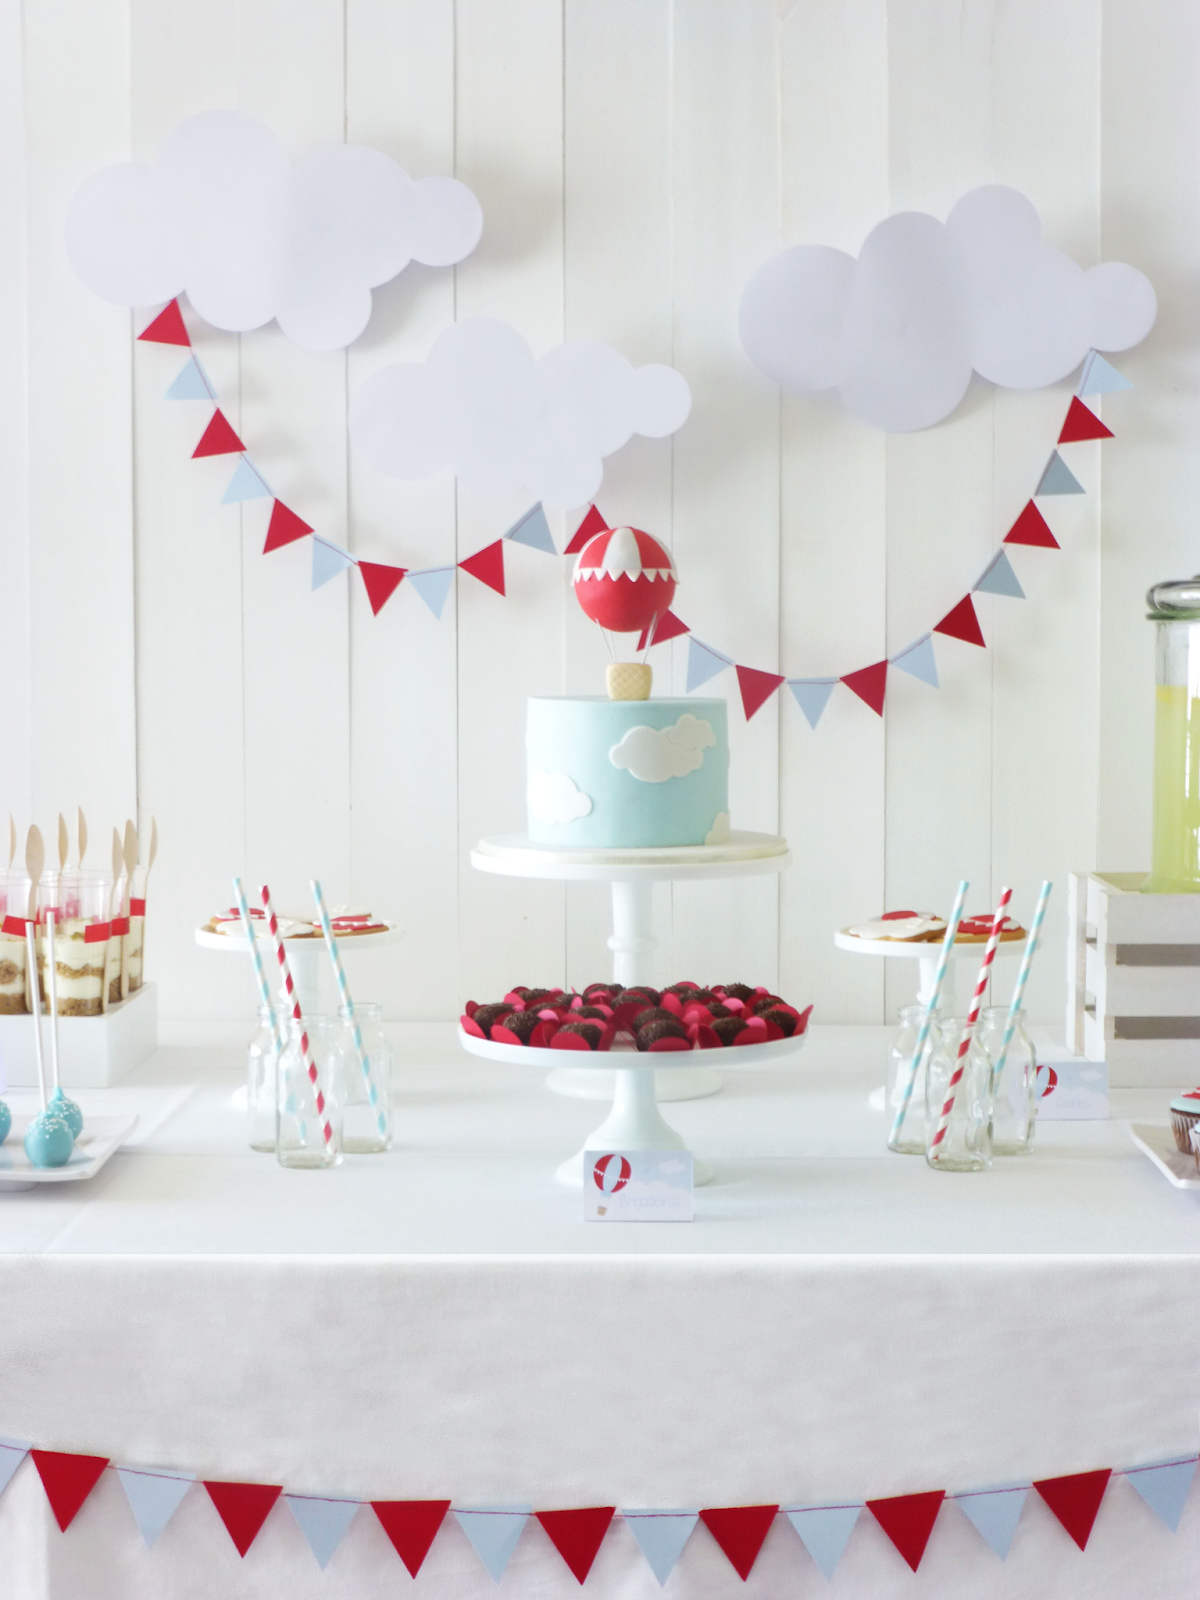 Idea For Dessert Table Gives Us The Option For A Small Cake Cupcakes And Other Opti Hot Air Balloon Baby Shower Hot Air Balloon Party Birthday Party Balloon